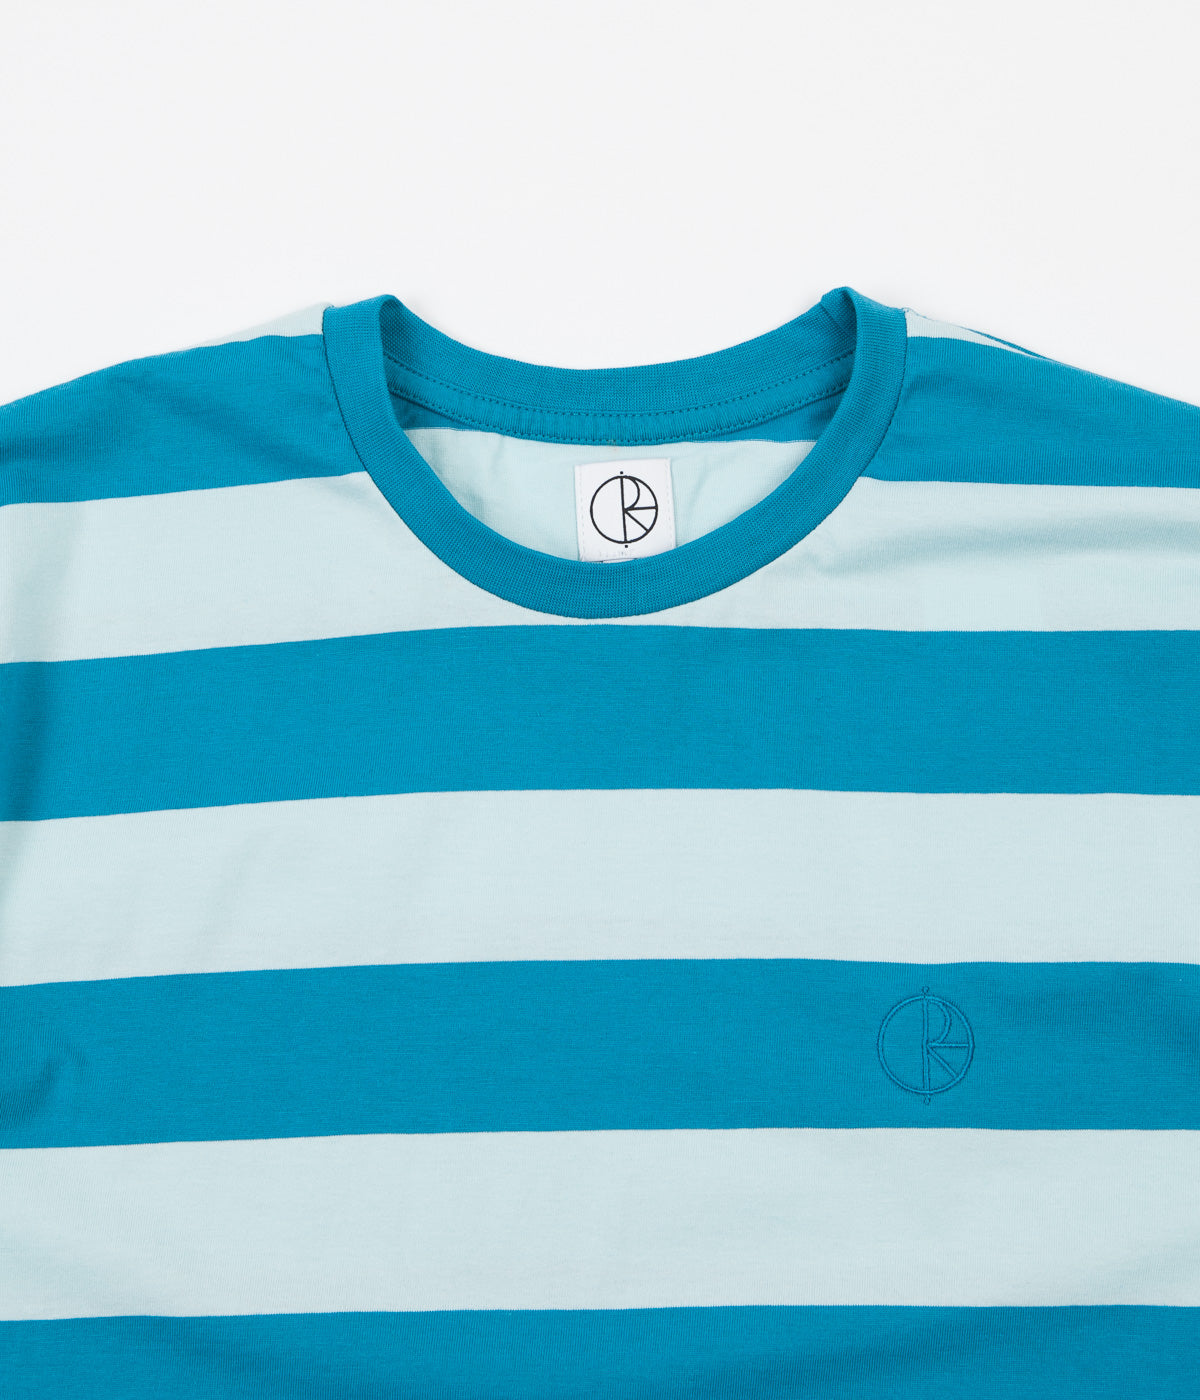 Polar x Ron Chatman Block Stripe T-Shirt - Mint / Teal